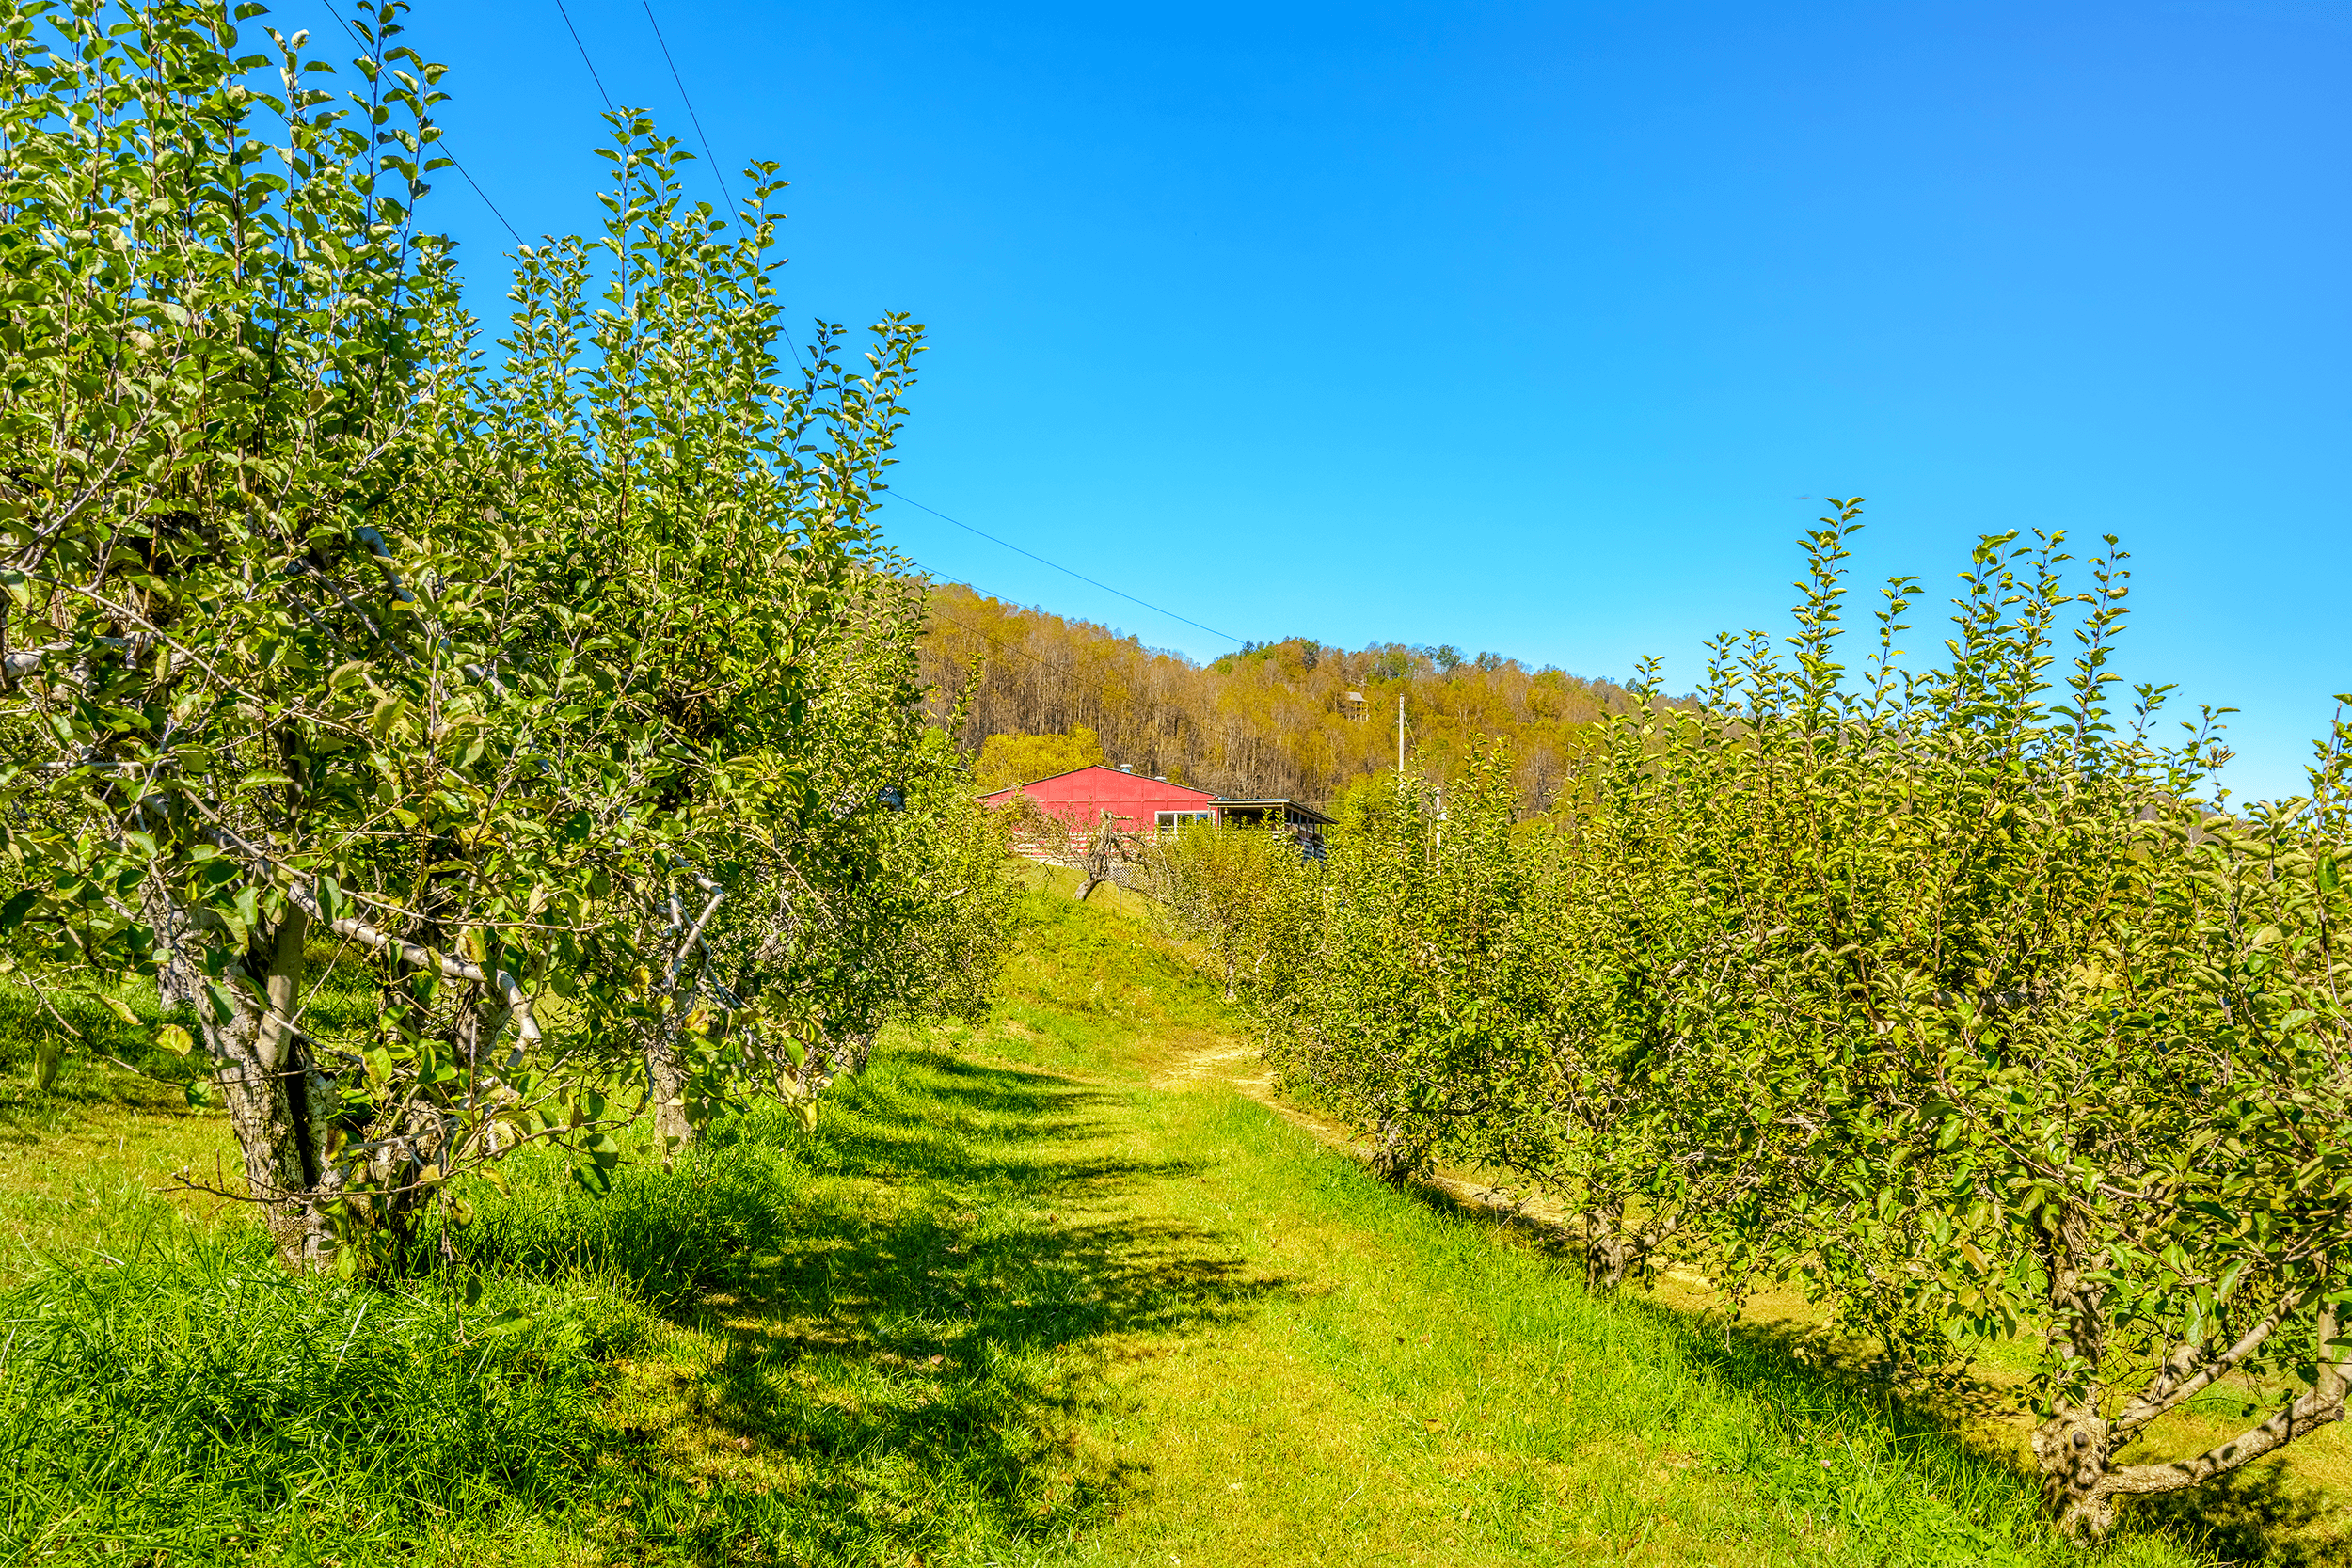 The 2-mile (3.2 km)  Loop Trail  brings you back to the red painted store, which was once the packing-house for the orchard in the 1950s.